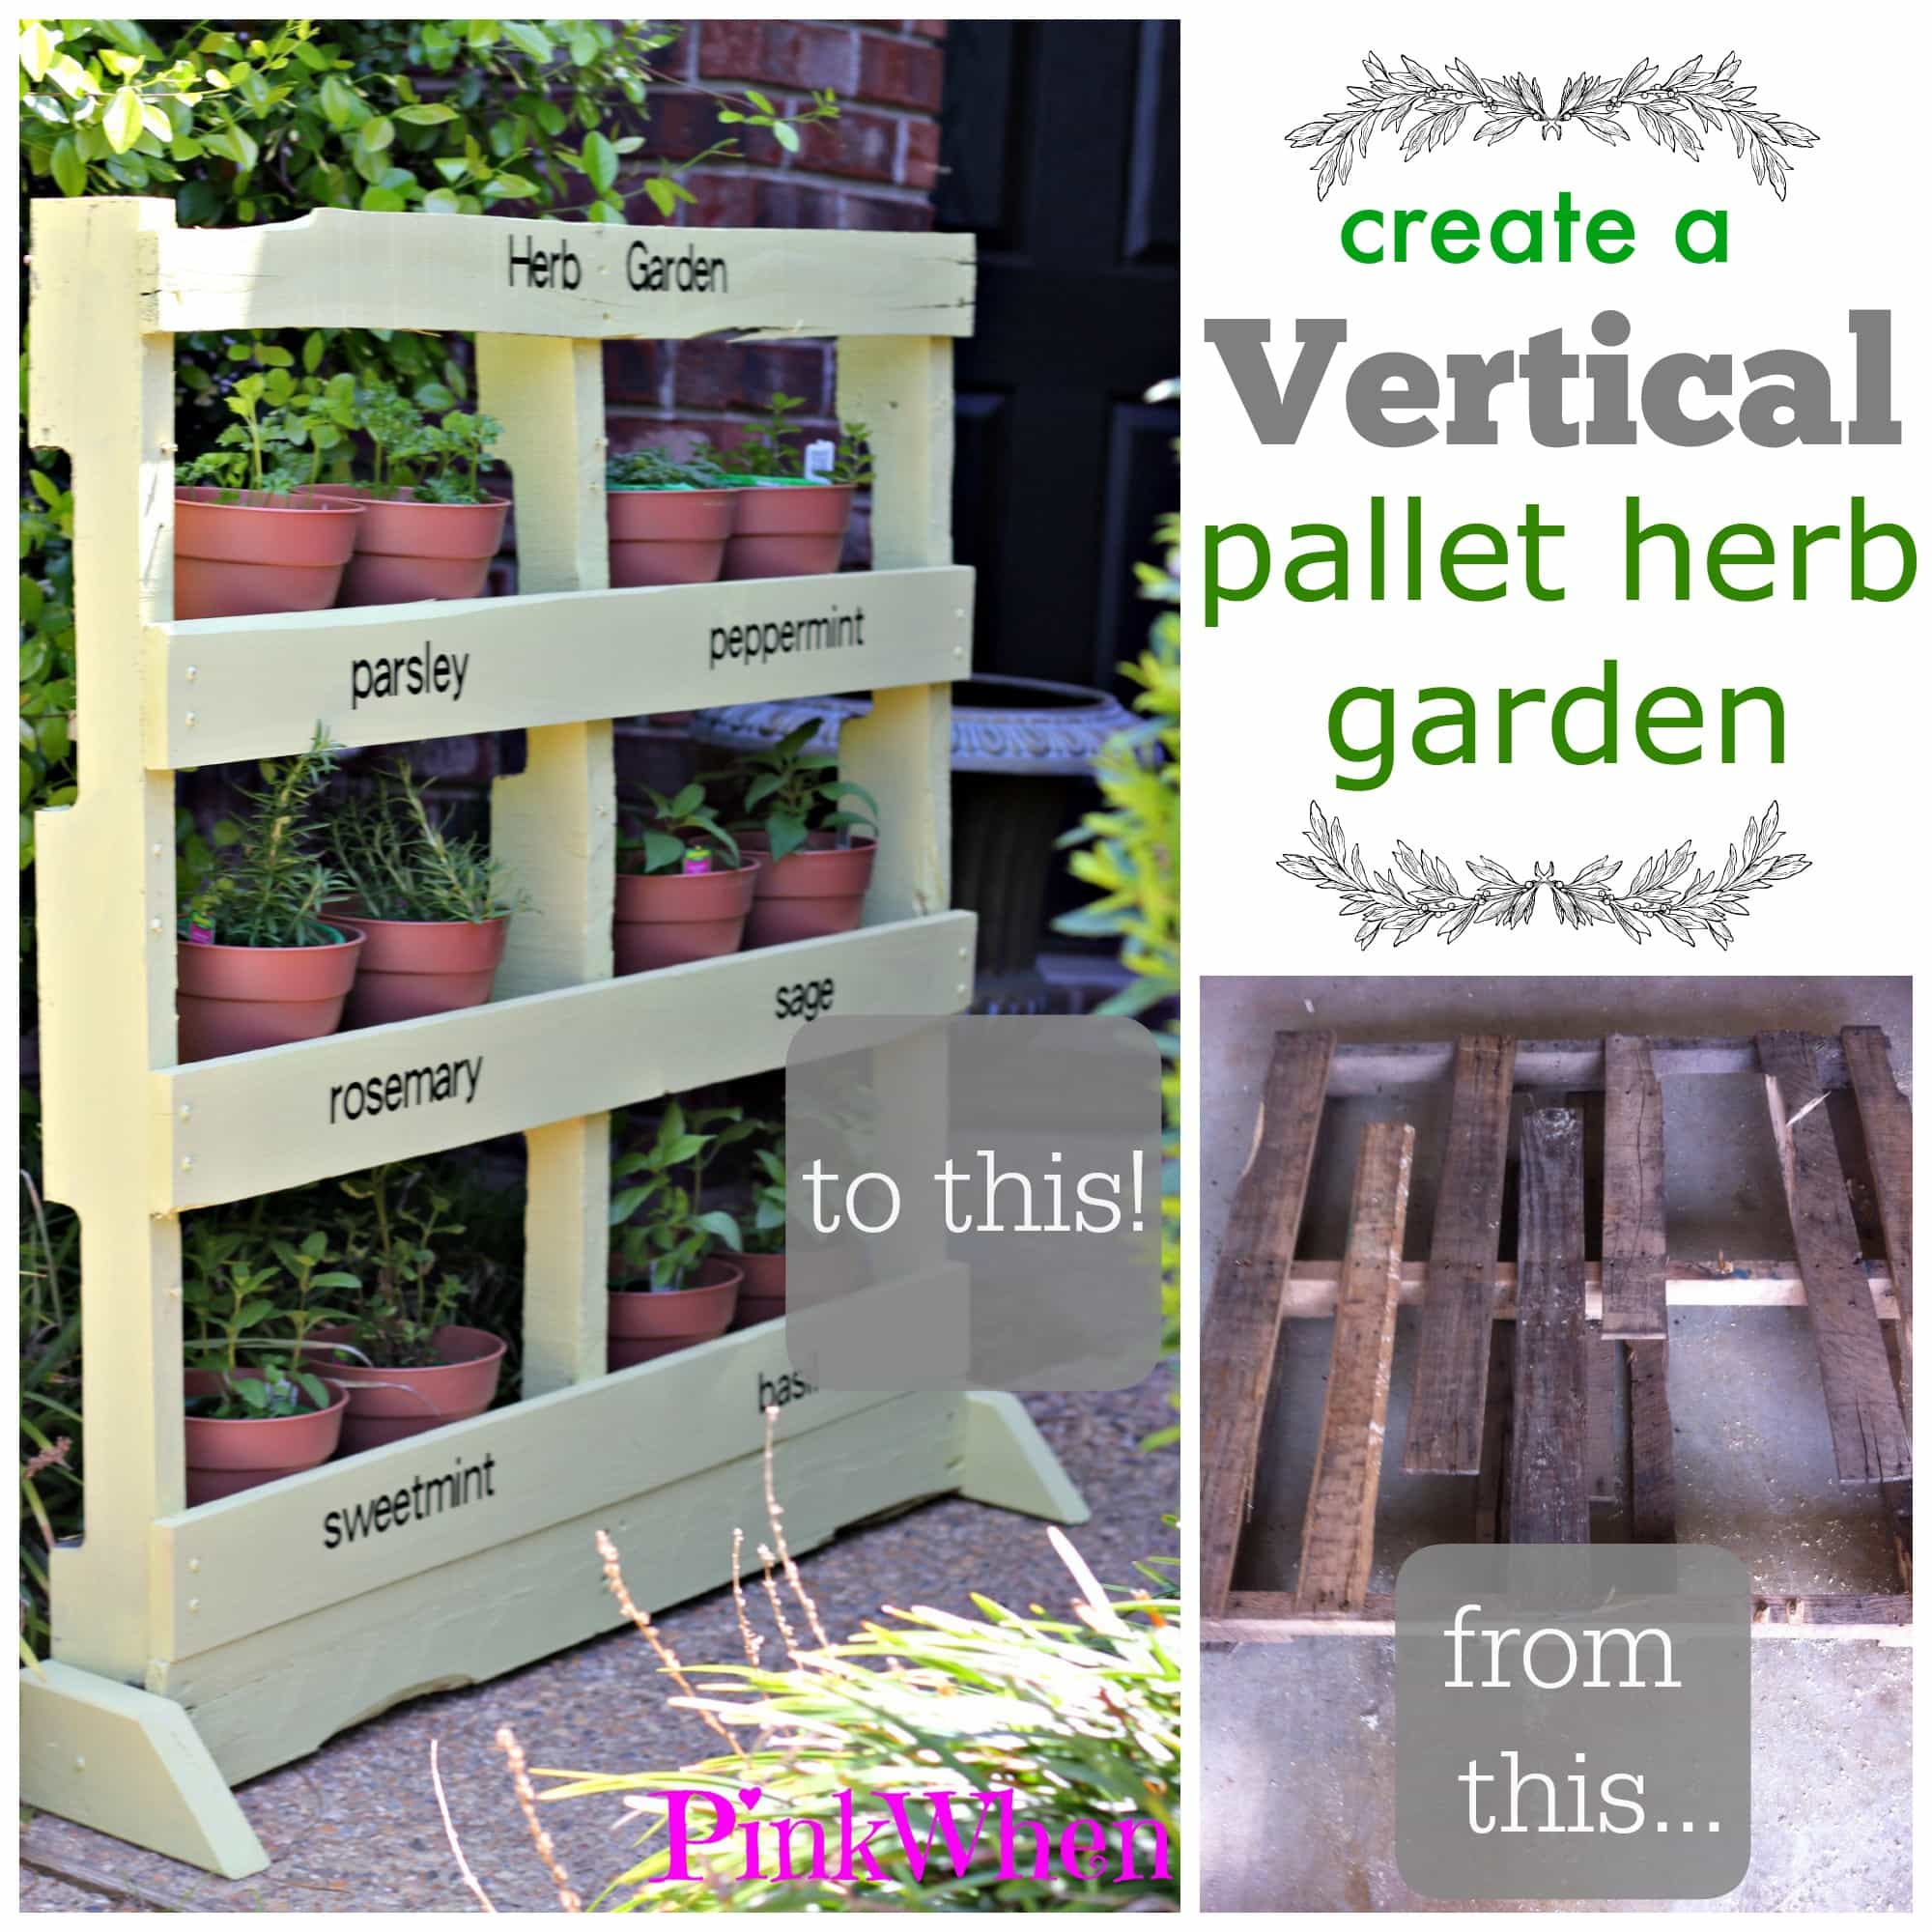 Creating a Vertical Pallet Herb Garden Page 2 of 2